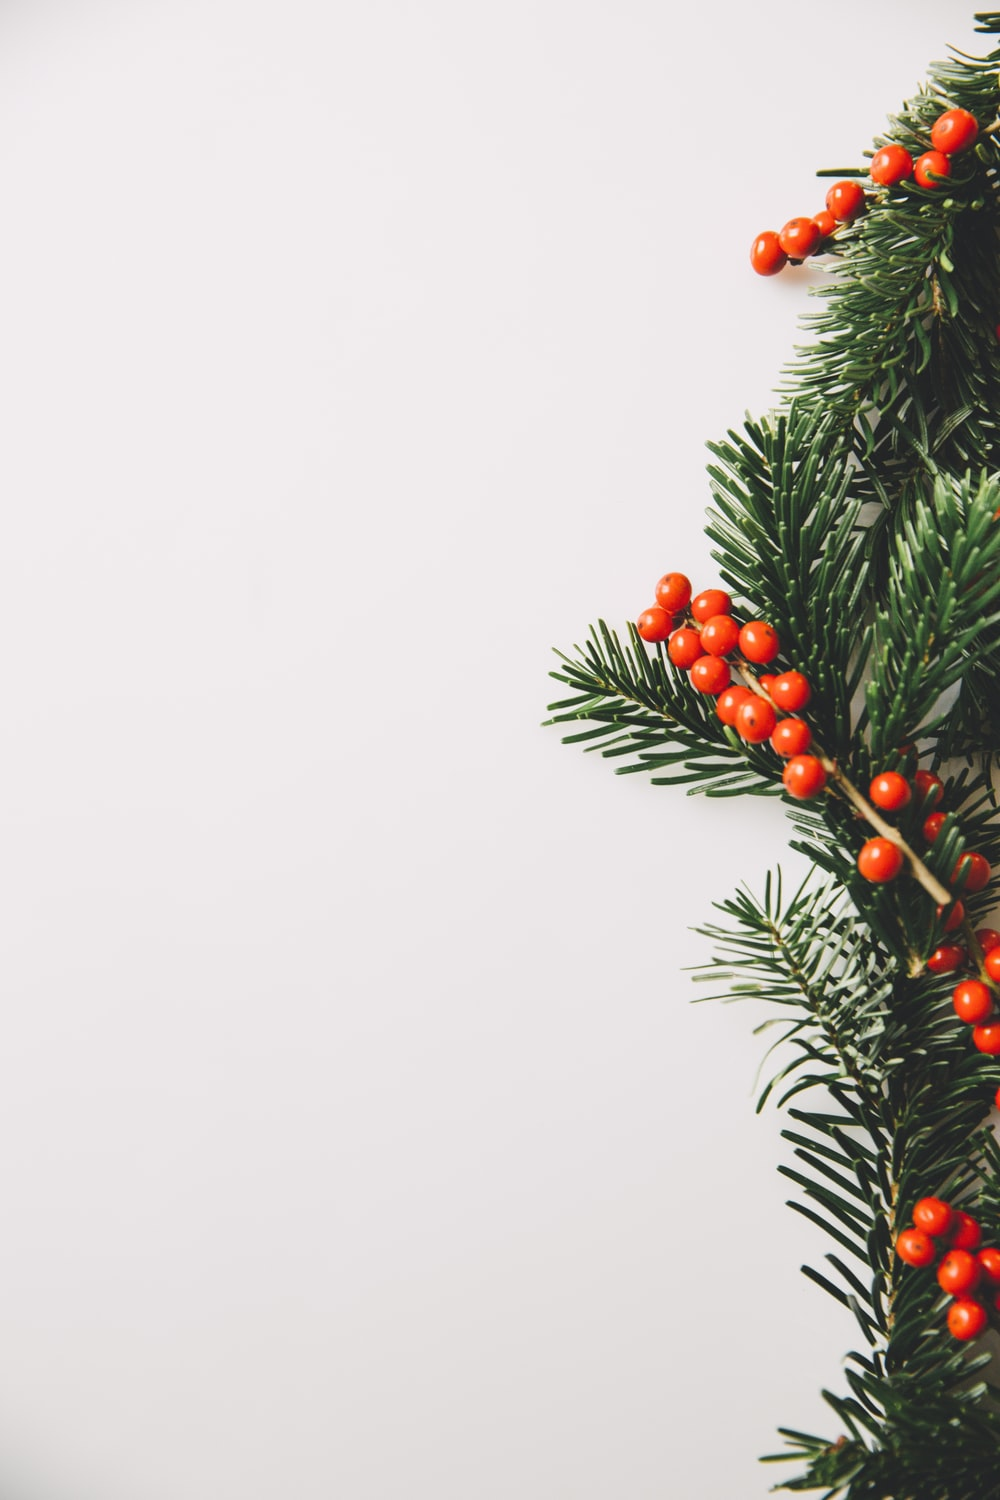 best 100 xmas pictures download free images on unsplash